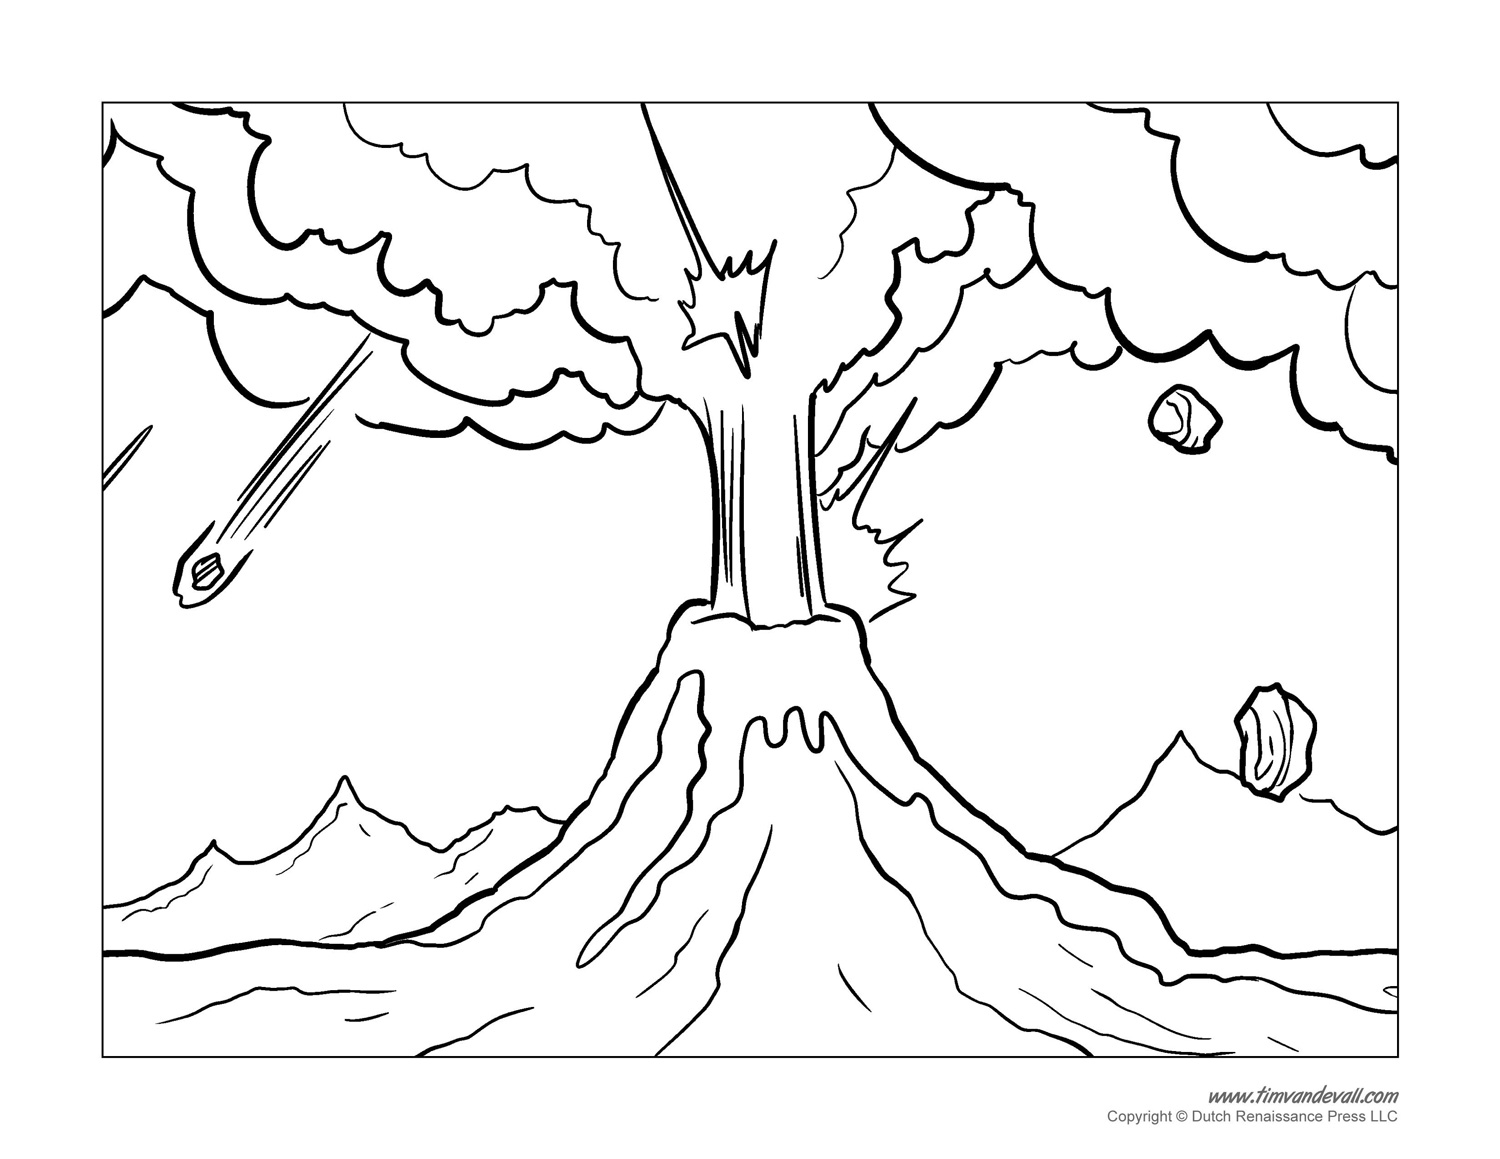 free printable volcano coloring pages volcano coloring pages to download and print for free free printable coloring pages volcano